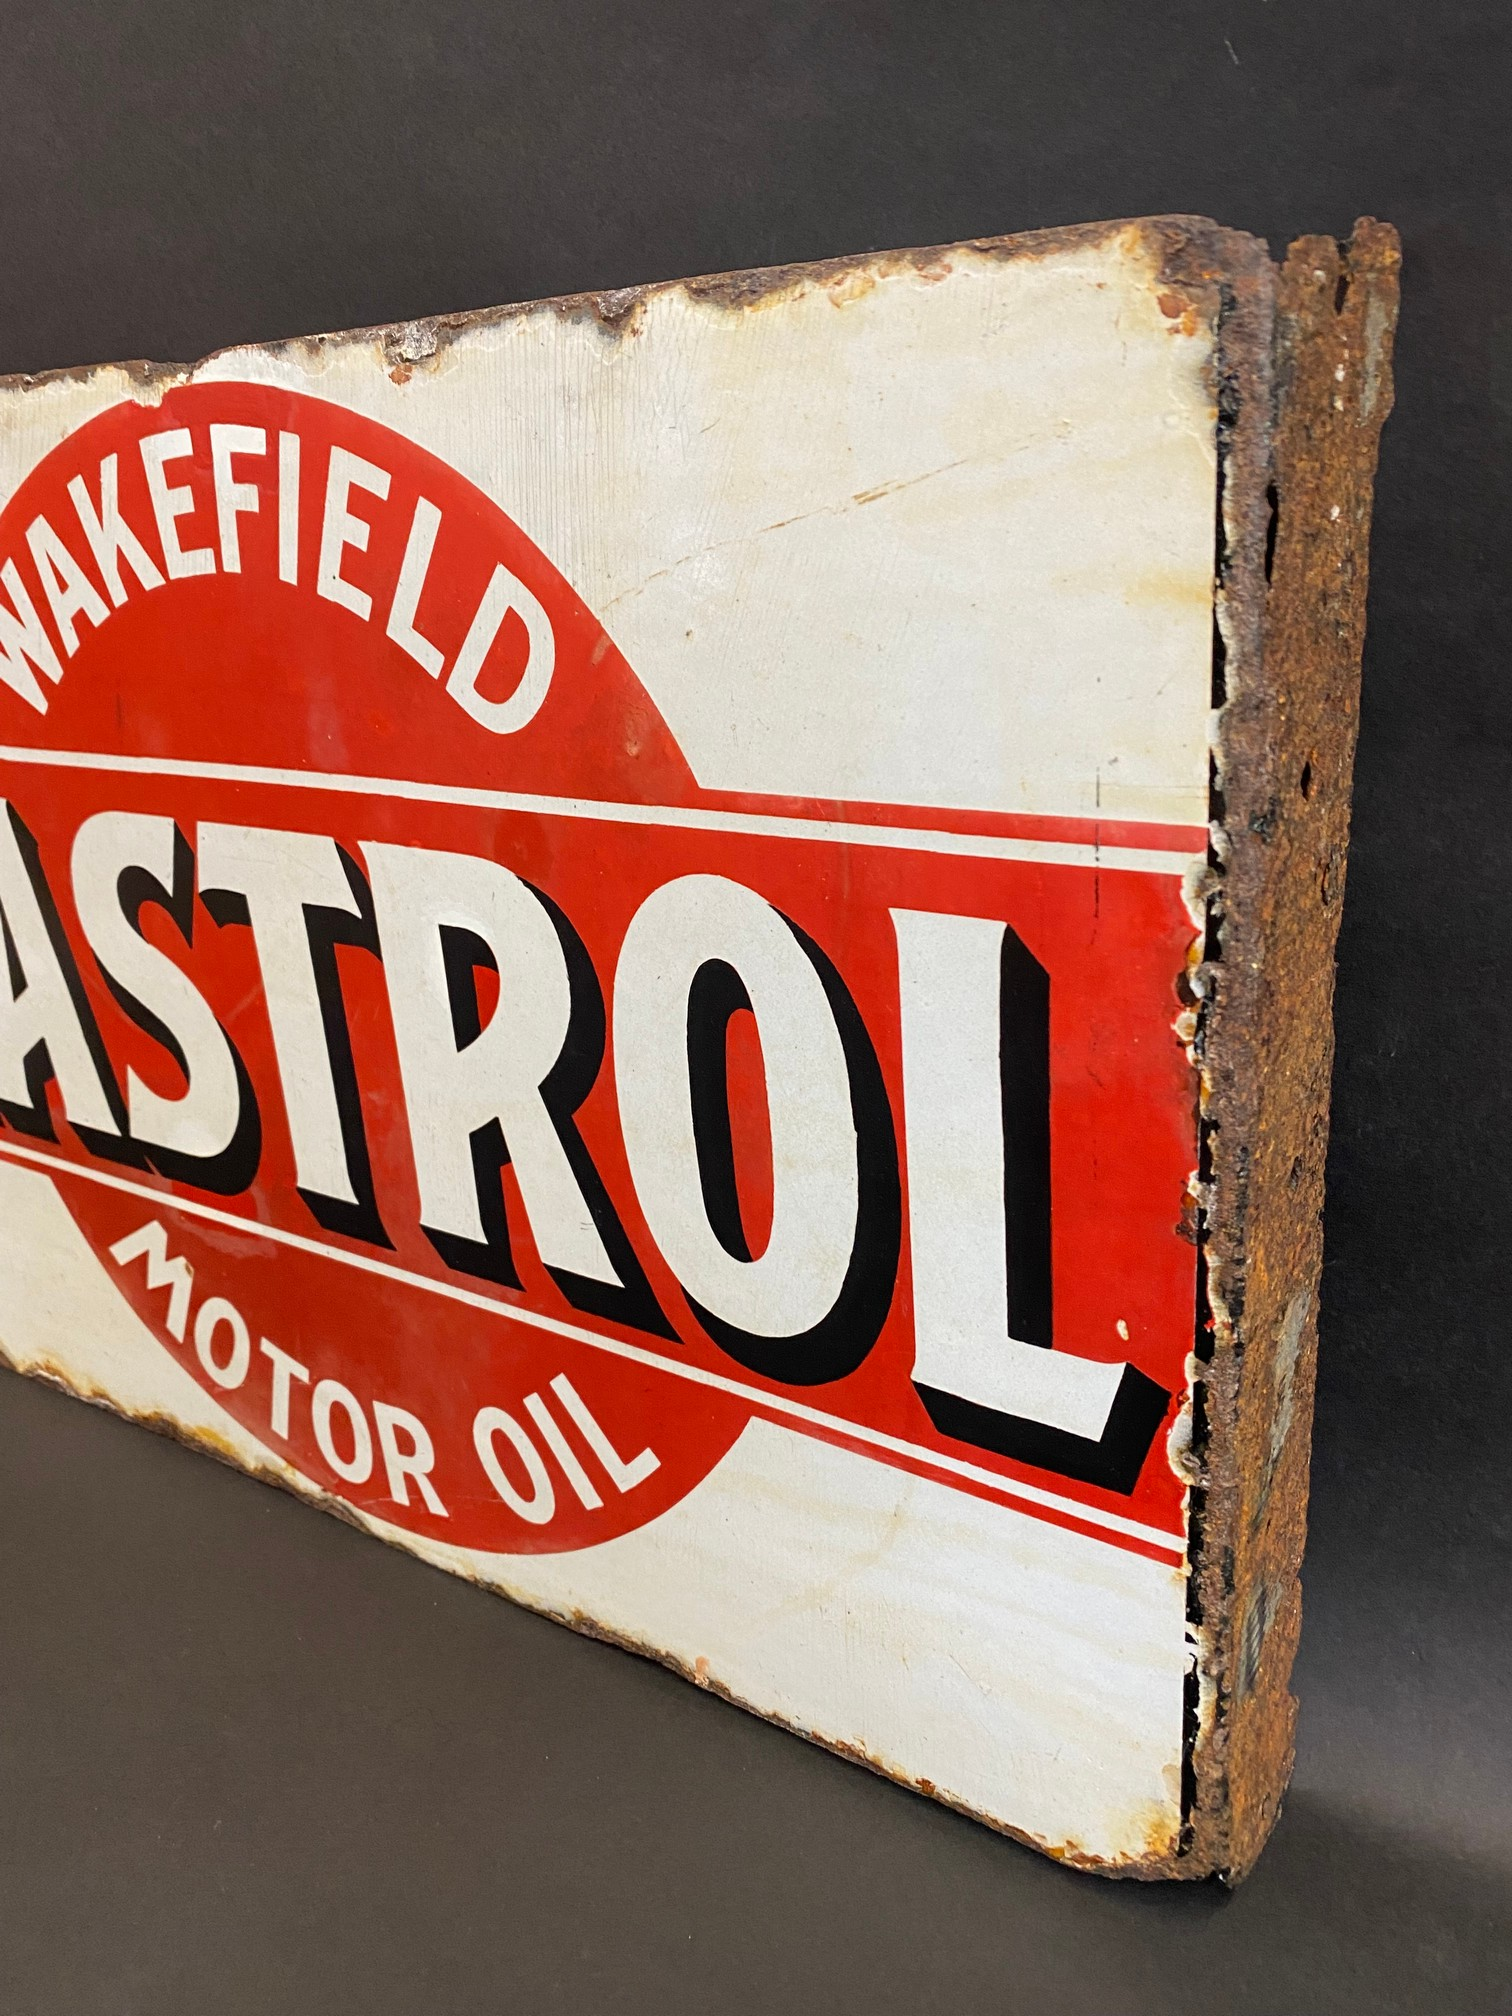 An early Wakefield Castrol Motor Oil double sided enamel sign with hanging flange, rare red and - Image 7 of 7